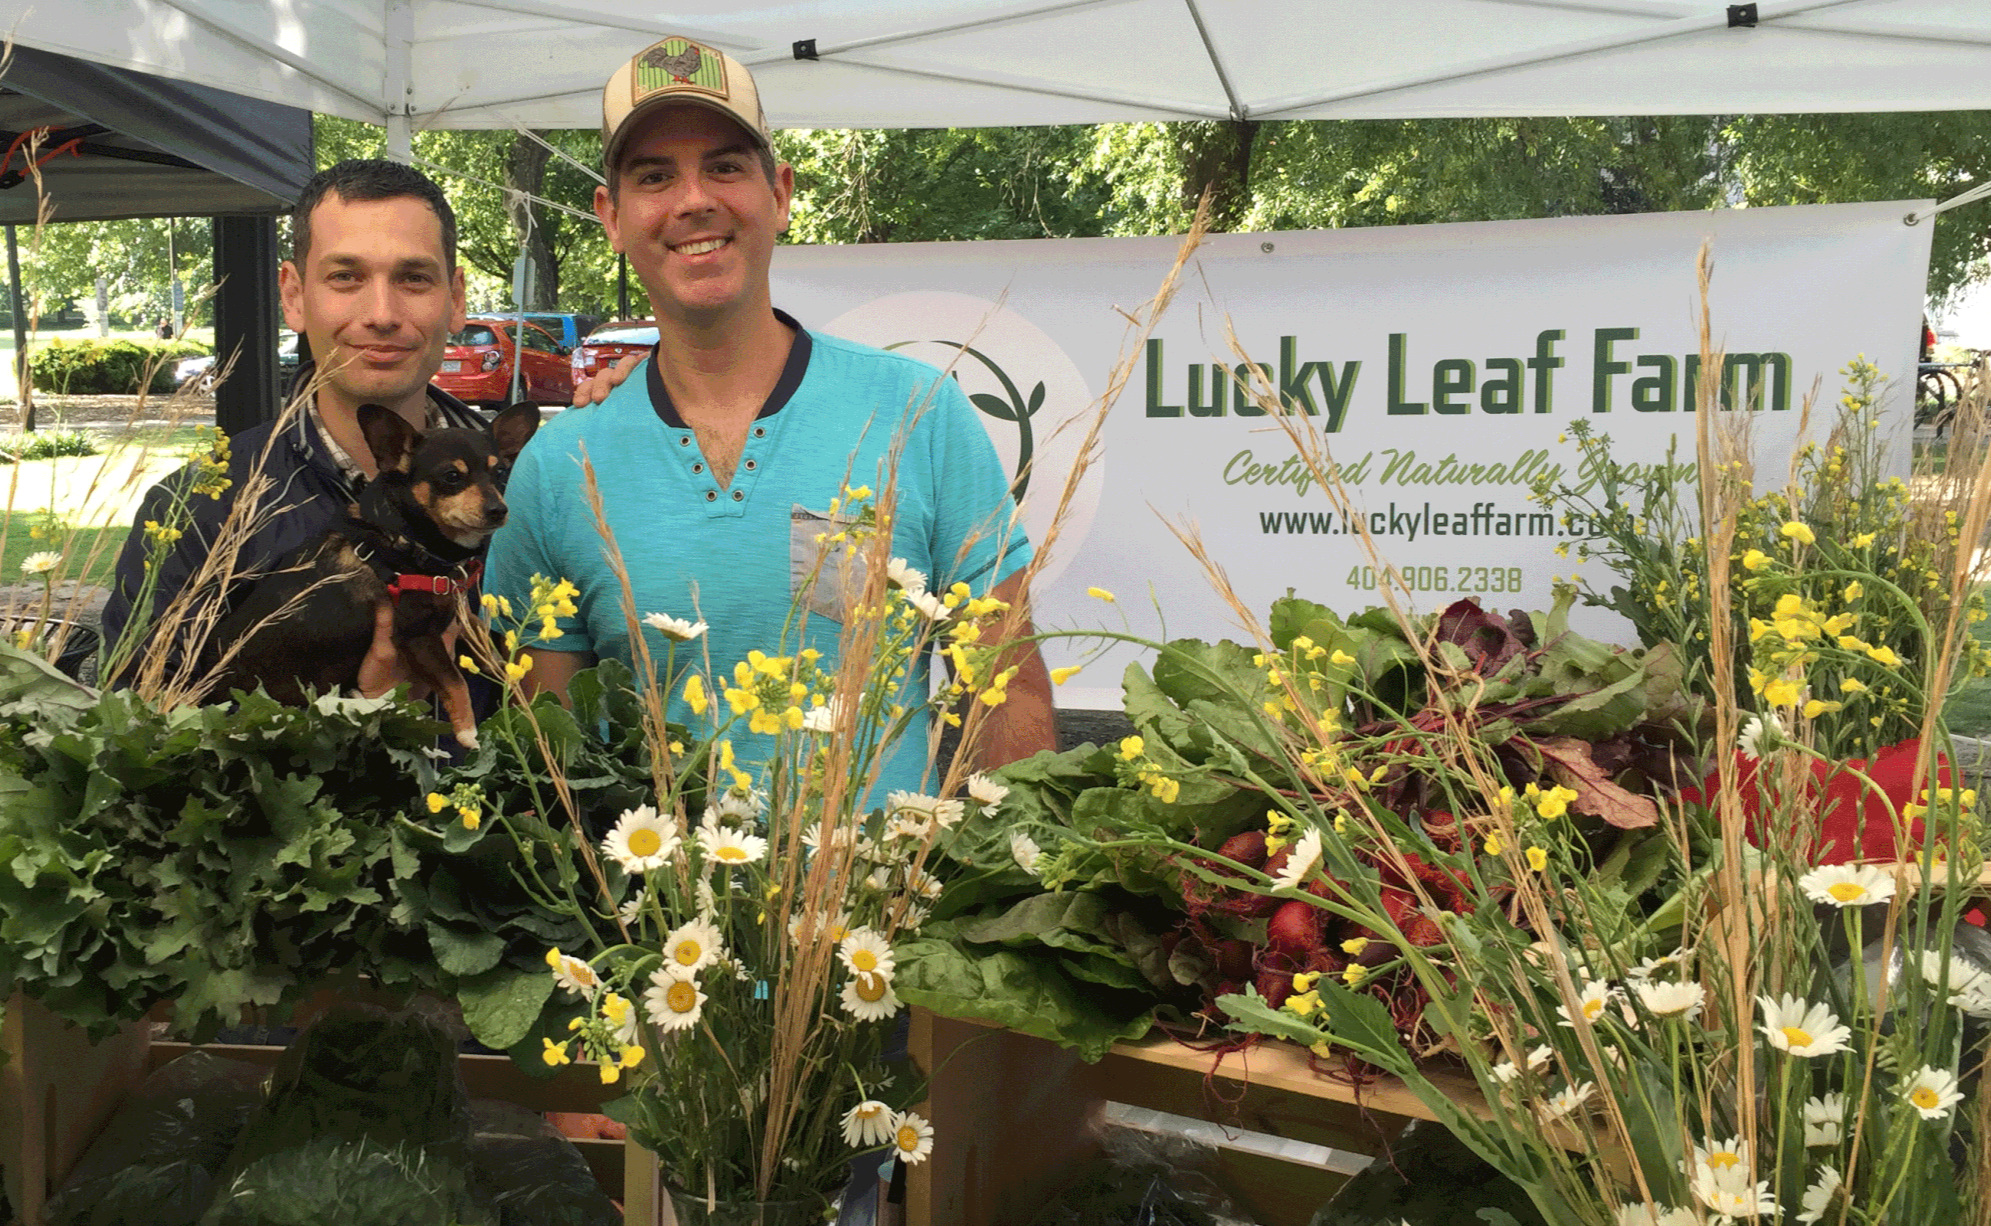 Joshua and John, owners of Lucky Leaf Farm at the Piedmont Green Market Farm Stand.